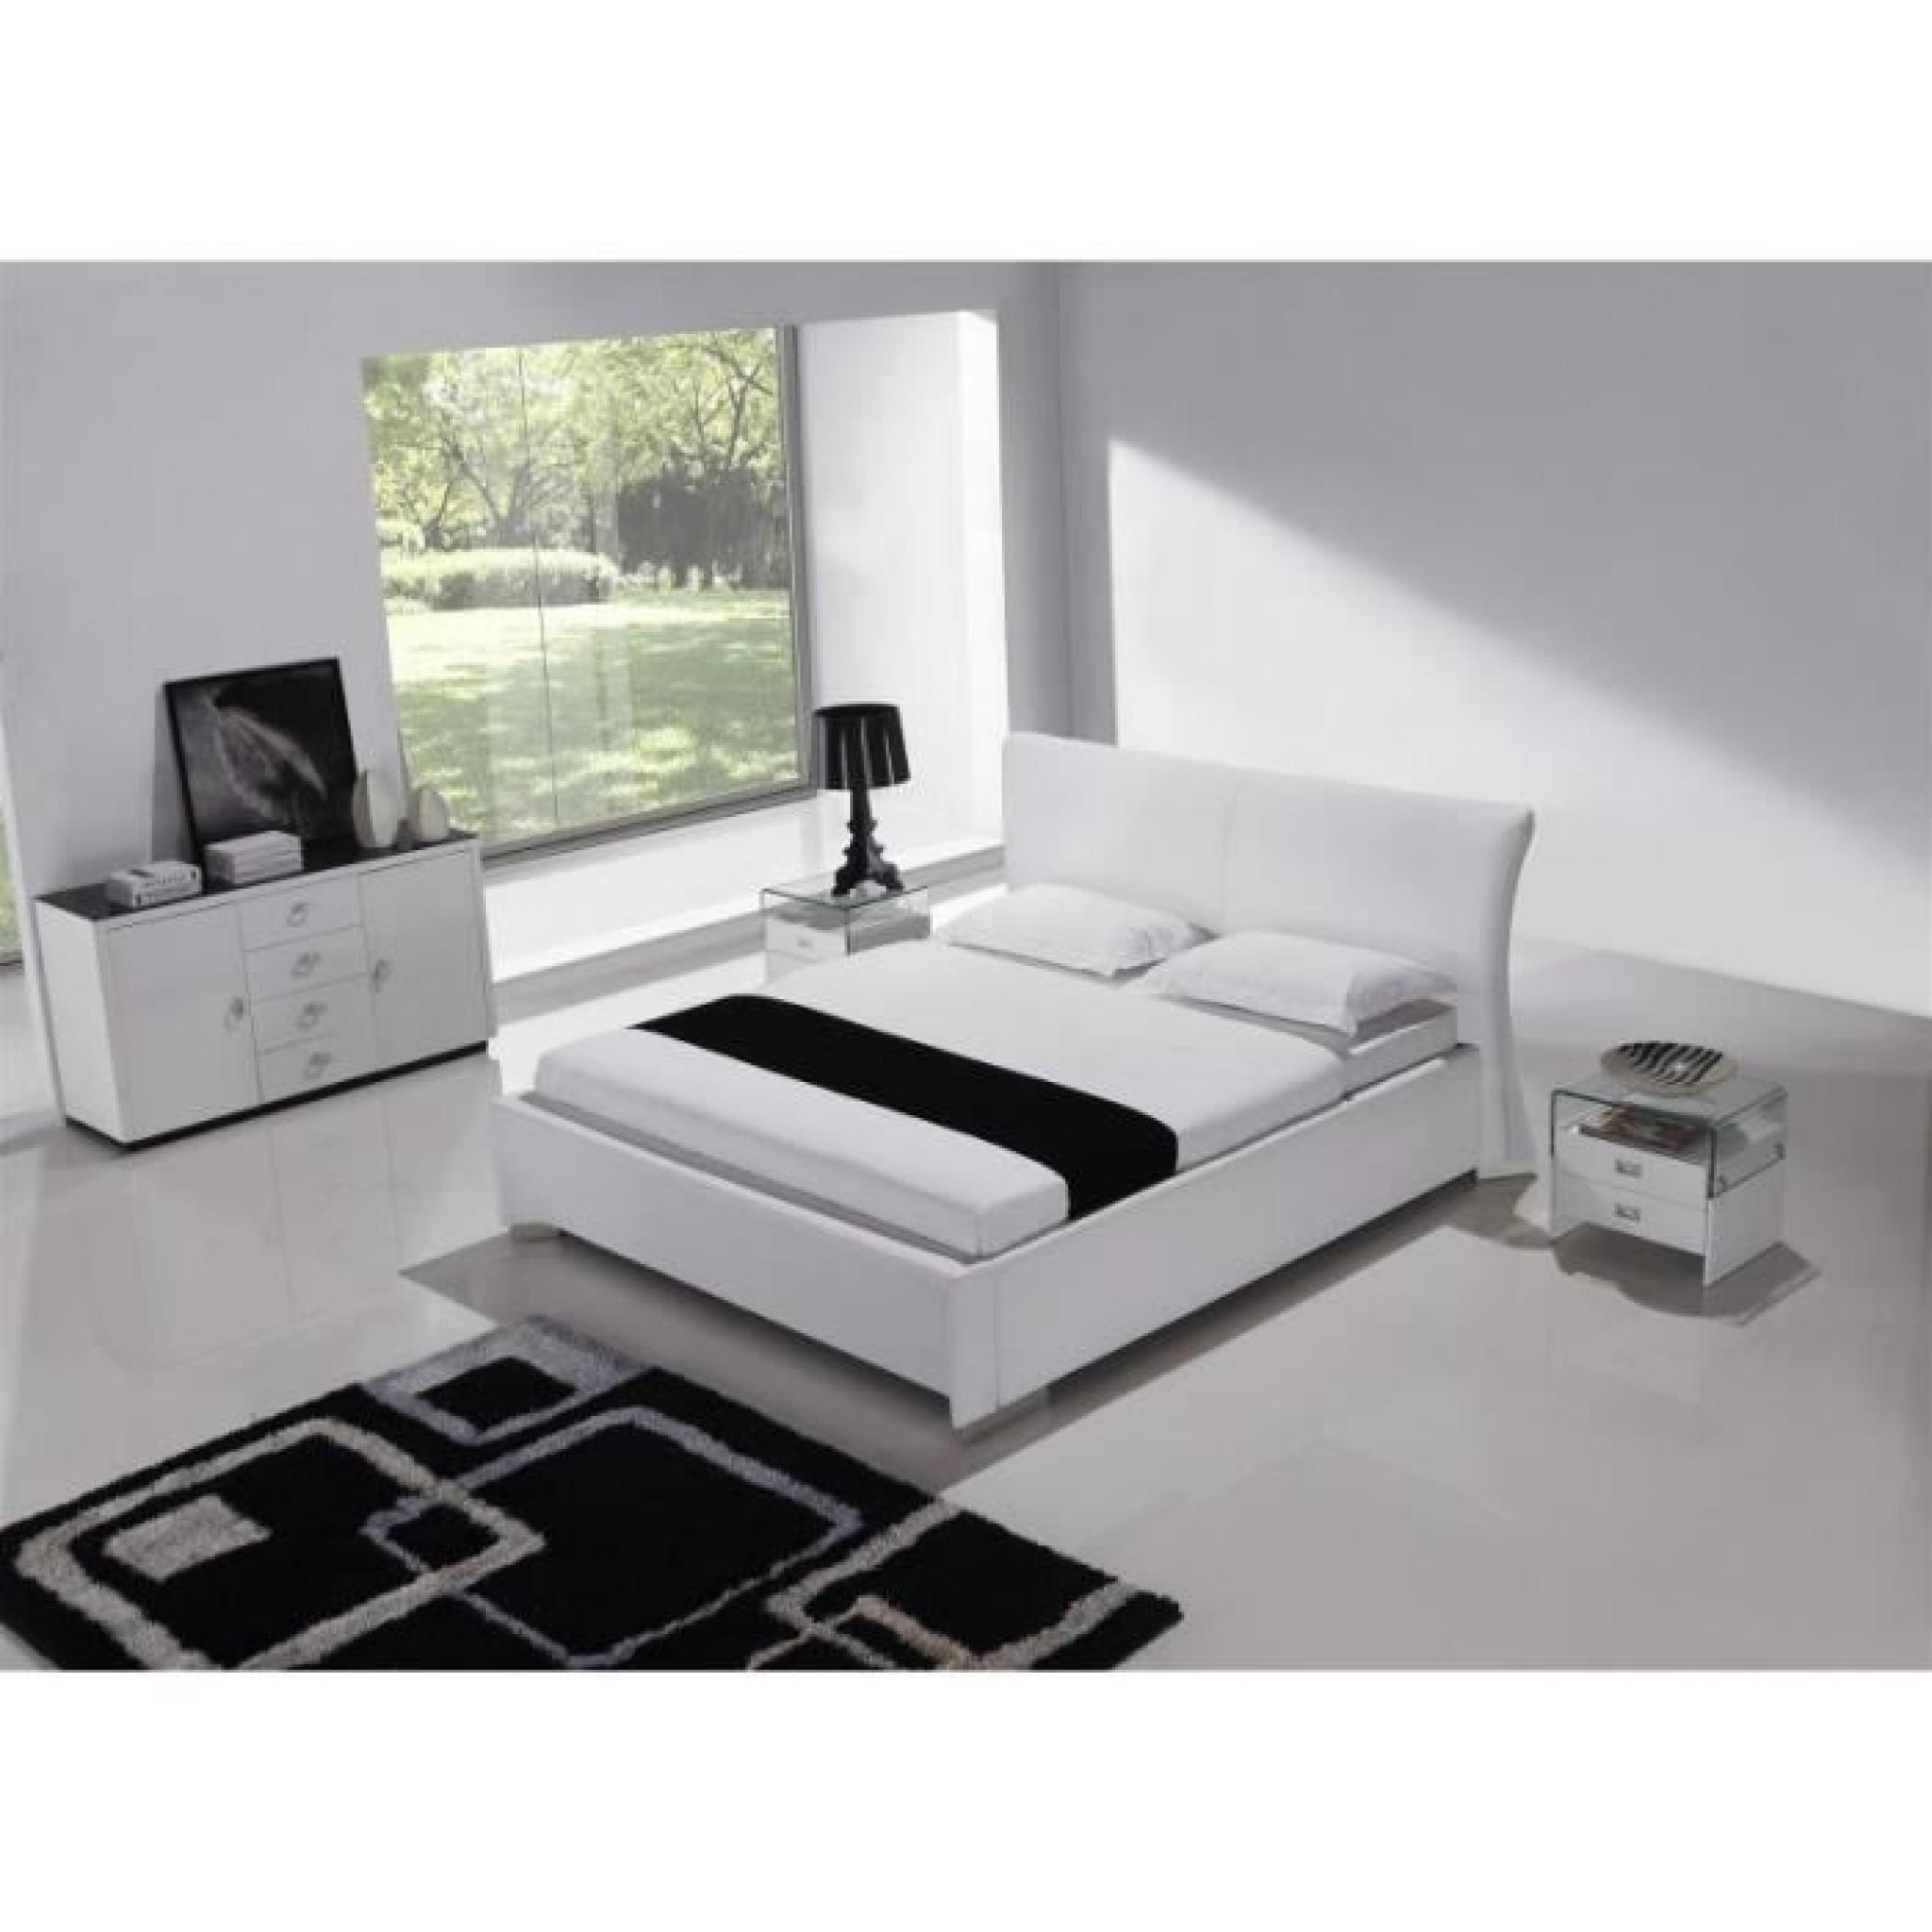 justhome dancer blanc lit rembourr en cuir cologique taille 140 x 200 cm achat vente lit. Black Bedroom Furniture Sets. Home Design Ideas